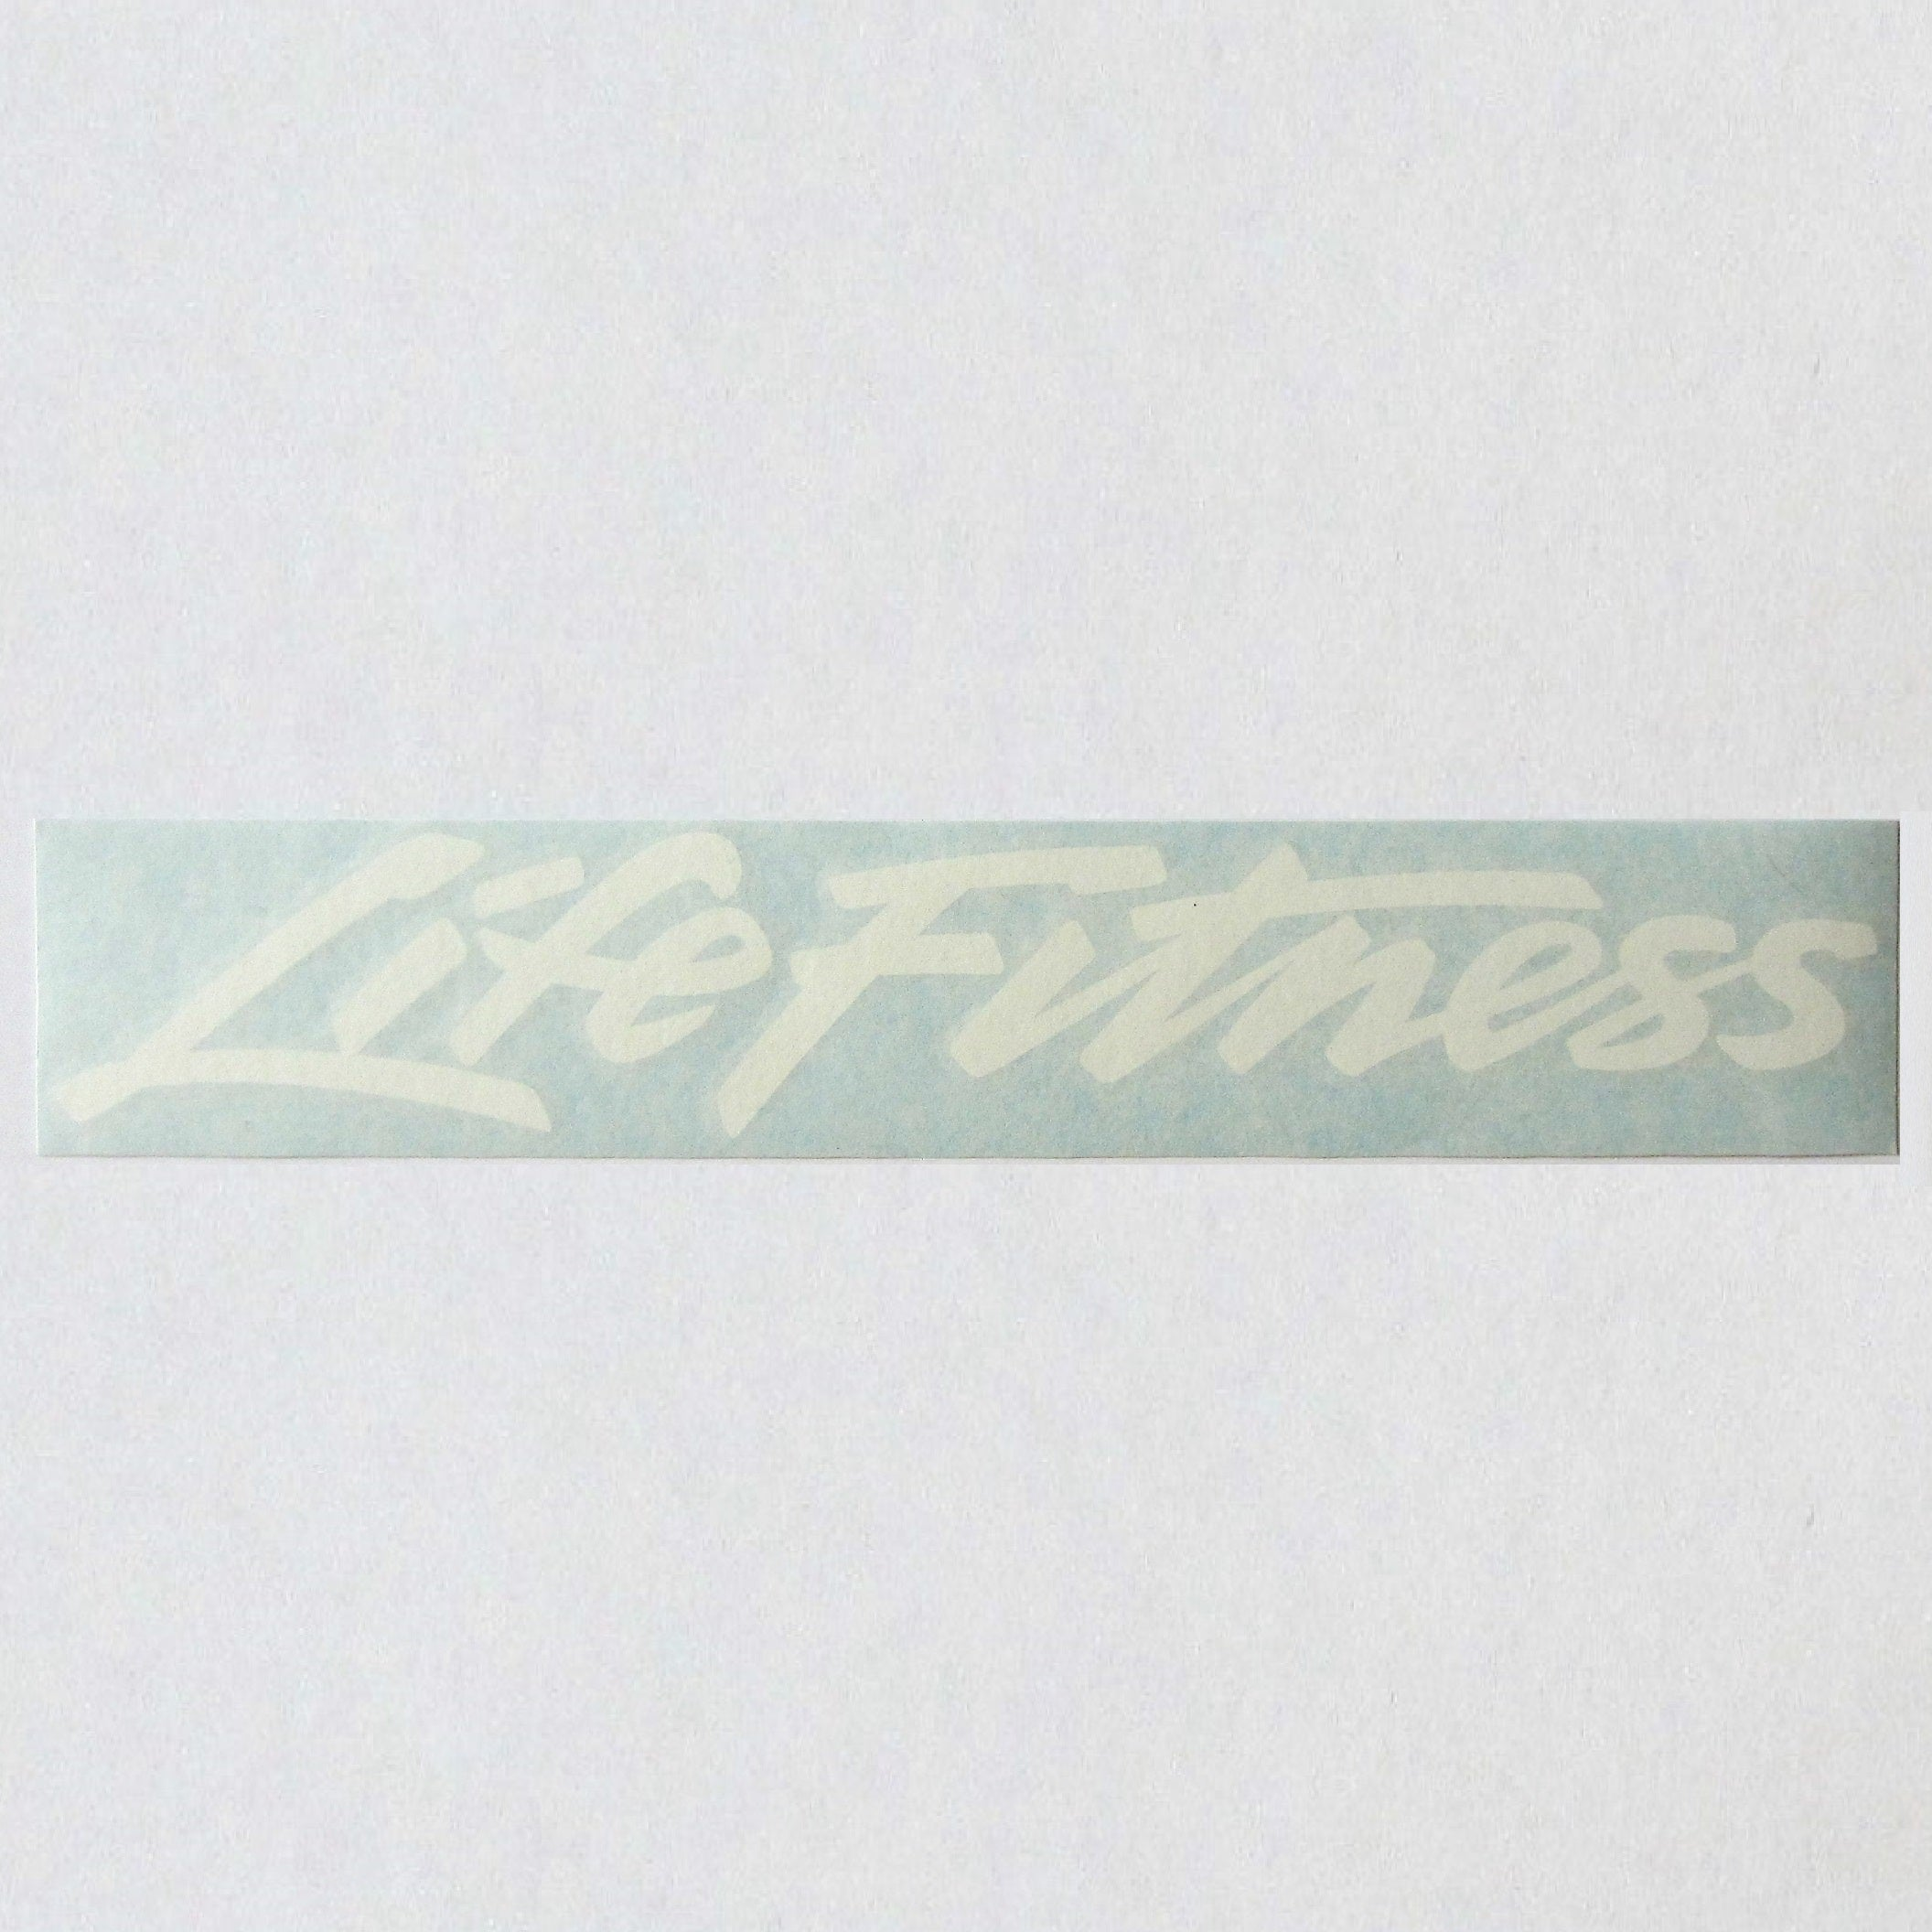 "Pro 2 - White Life Fitness 12"" Frame Decal"